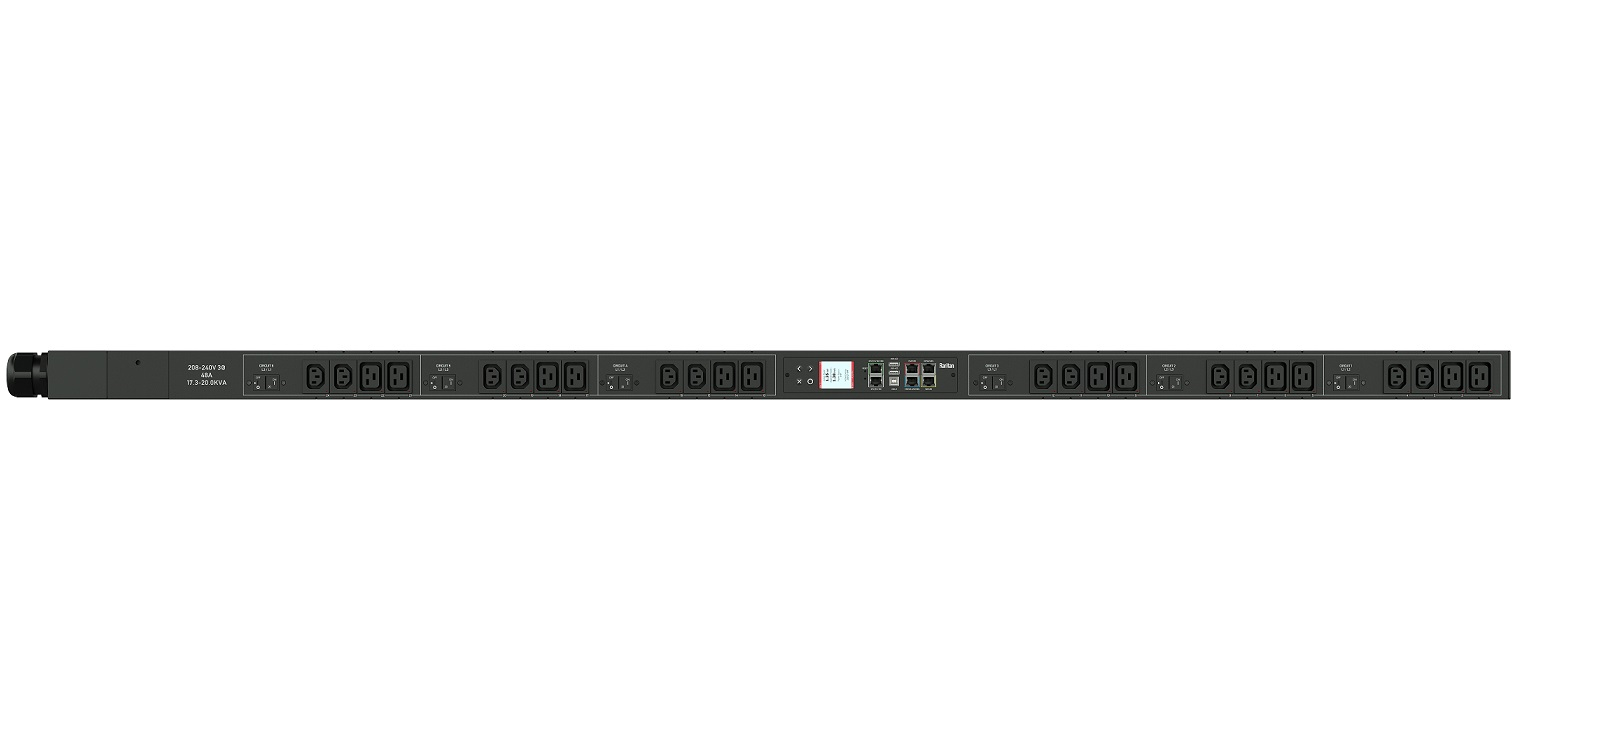 Raritan 17.3kVA 208V 24x Outlets 12xC13 12xC19 0U Rack Power Distribution Unit PX3-5551V-V2 PX35551VV2